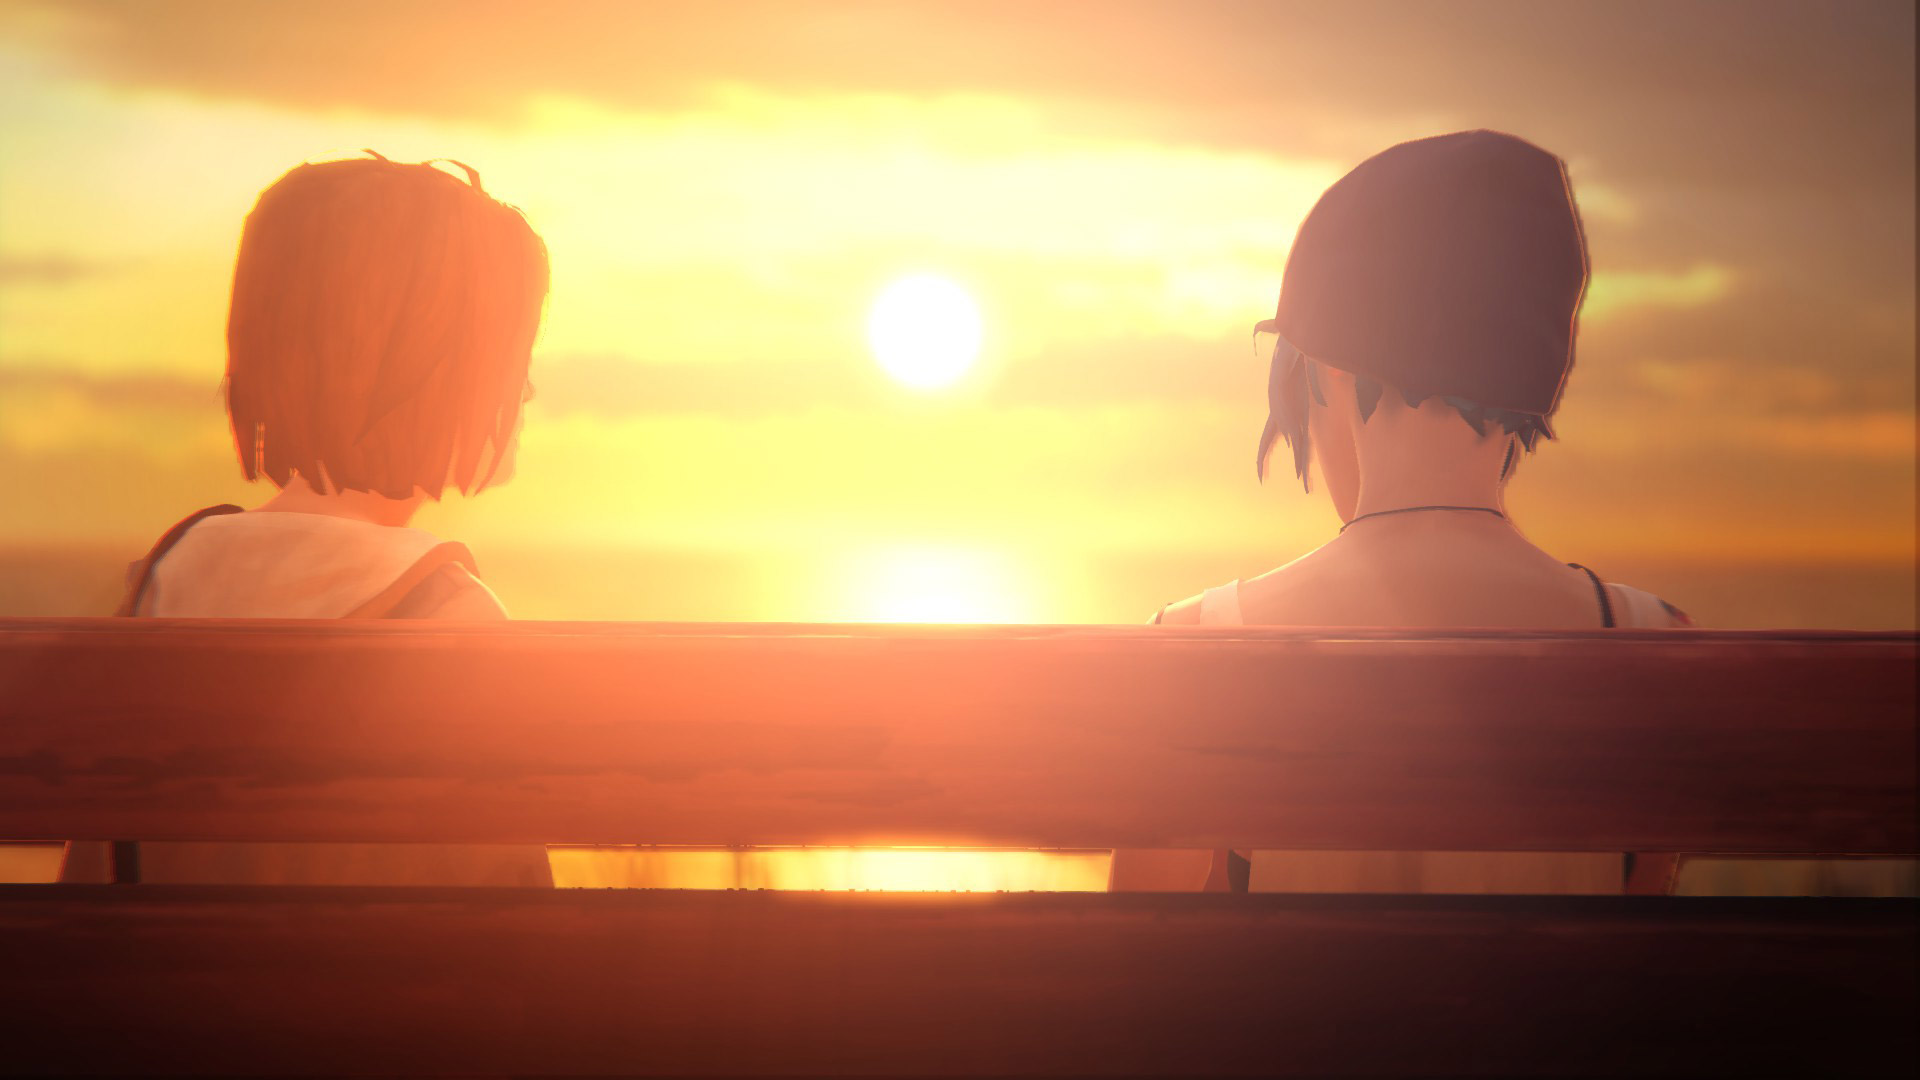 Life is Strange Wallpaper in 1920x1080